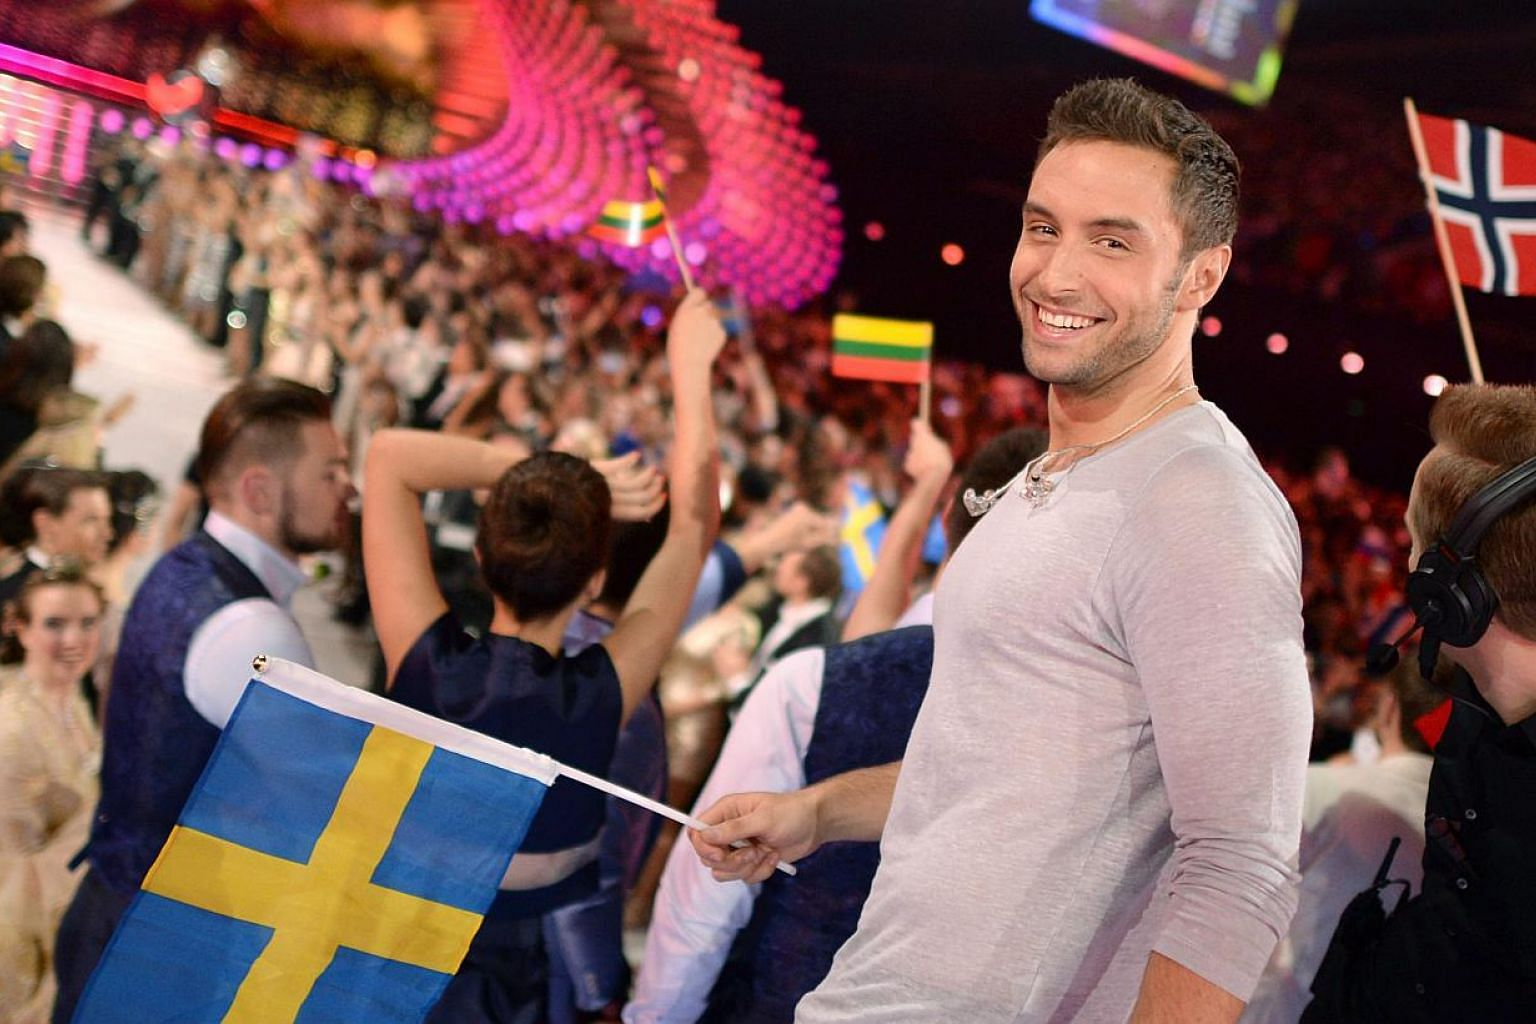 Mans Zelmerlow poses in the contestant's Greenroom during the second semi-final of the 60th annual Eurovision Song Contest (ESC) at the Wiener Stadthalle in Vienna, Austria, on May 21, 2015. -- PHOTO: EPA